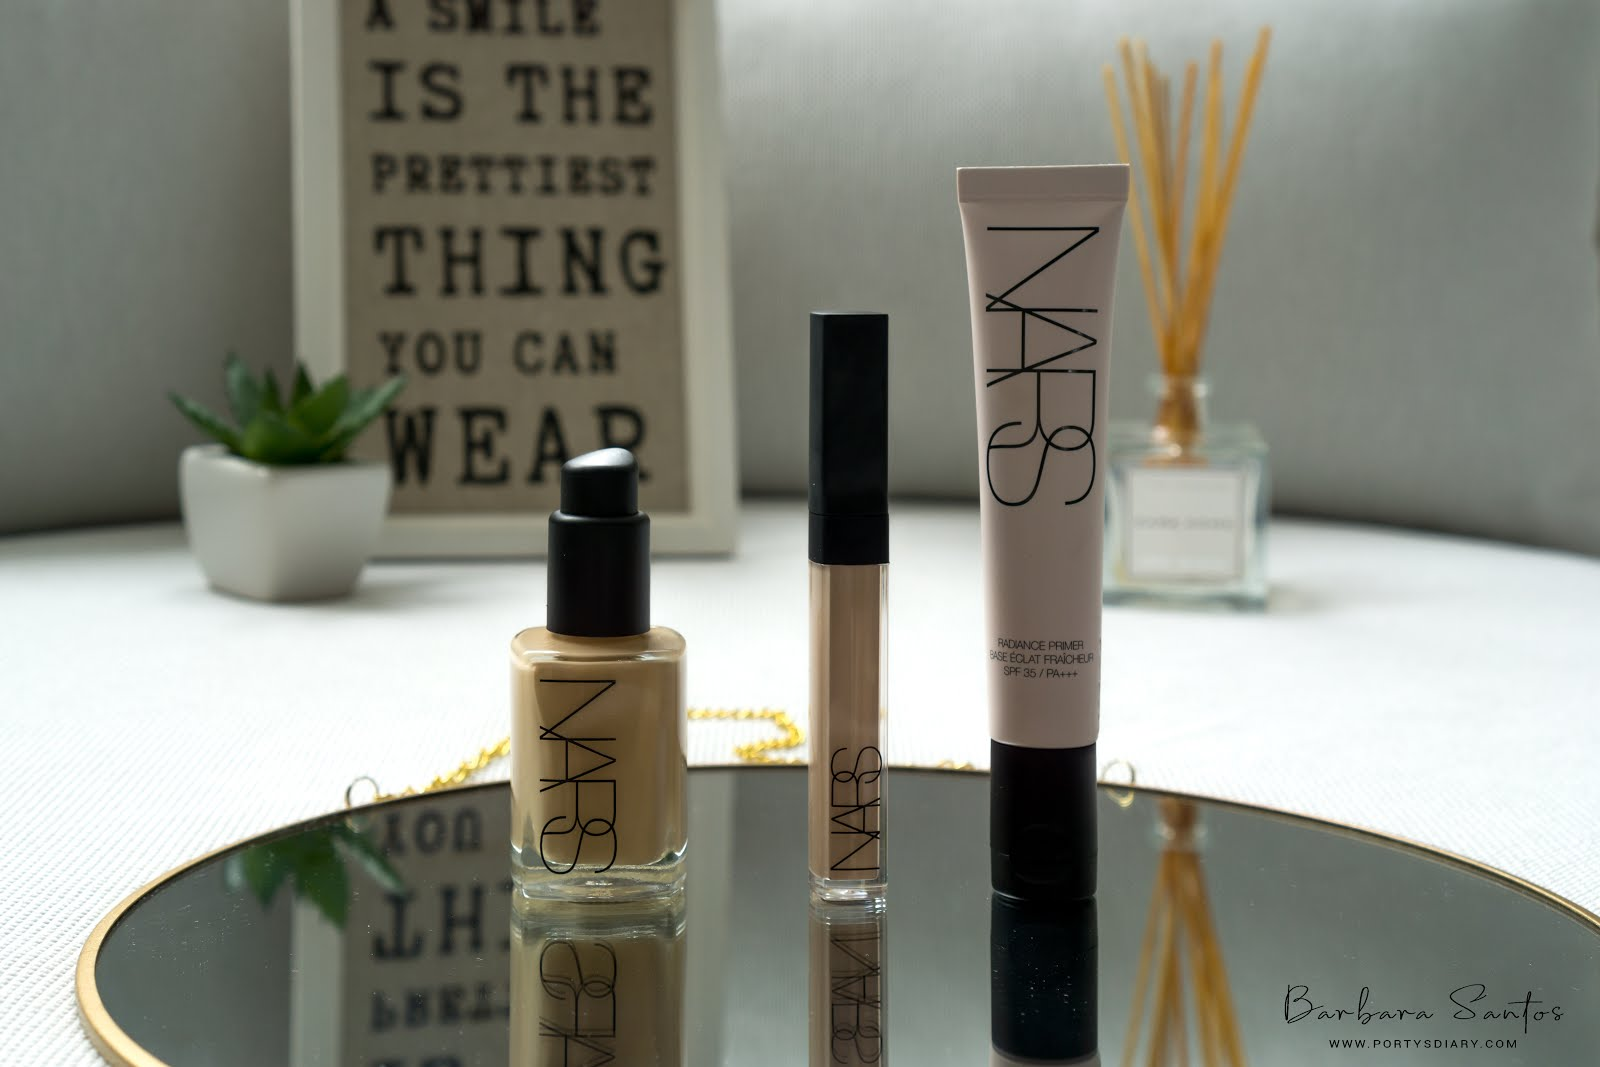 Beauty - Trying out NARS products for the first time. Read my First impressions on these products. What does and does not work so well for me and why. NARS Radiance Primer with SPF35, NARS Sheer Glow Foundation, NARS Radiant Creamy Concealer. All photos with Sony a6000 by Barbara Santos for www.portysdiary.com